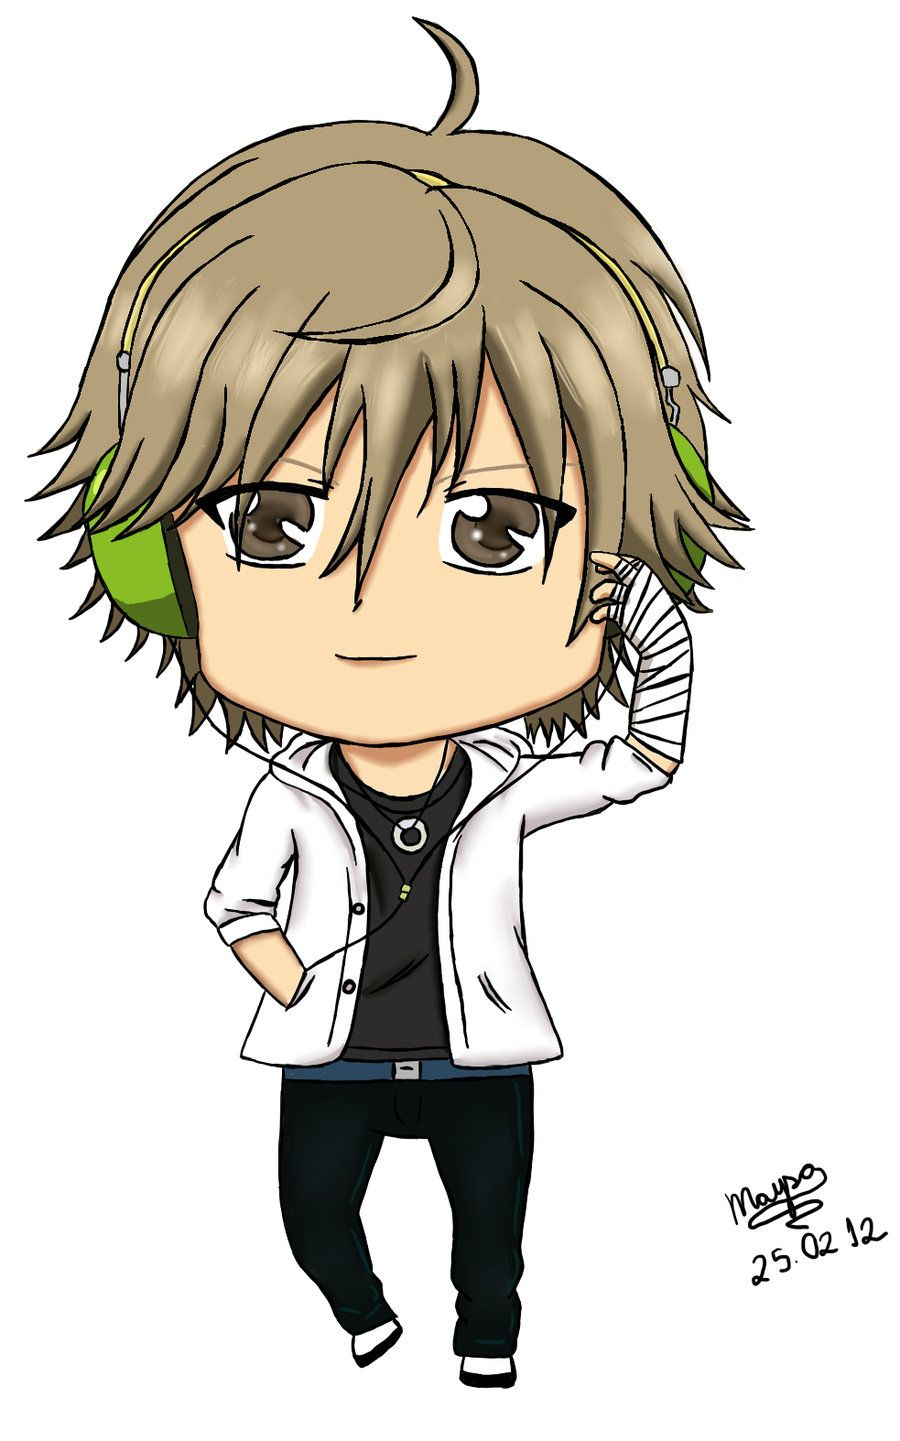 Pix for chibi boy with headphones chibi boy anime guys muhammad